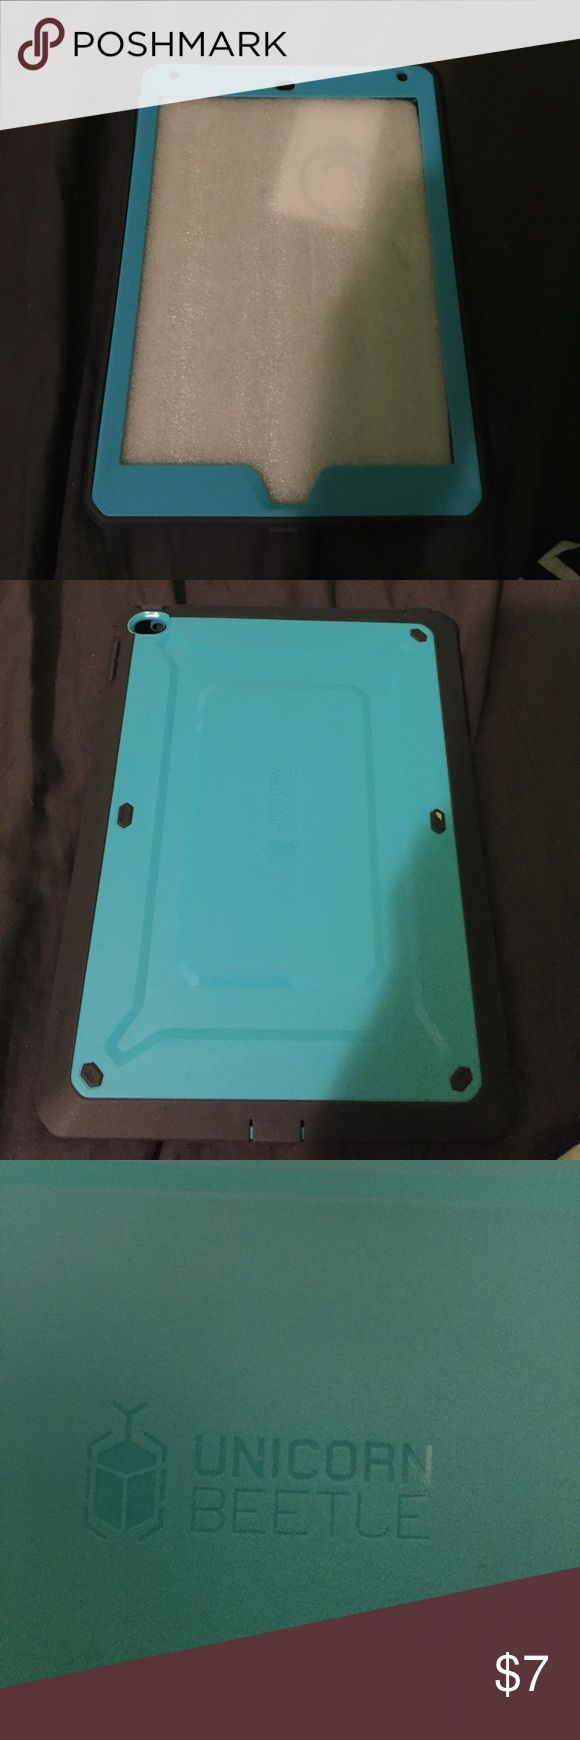 I pad air case Blue I pad air case Brand New unicorn beetue Other